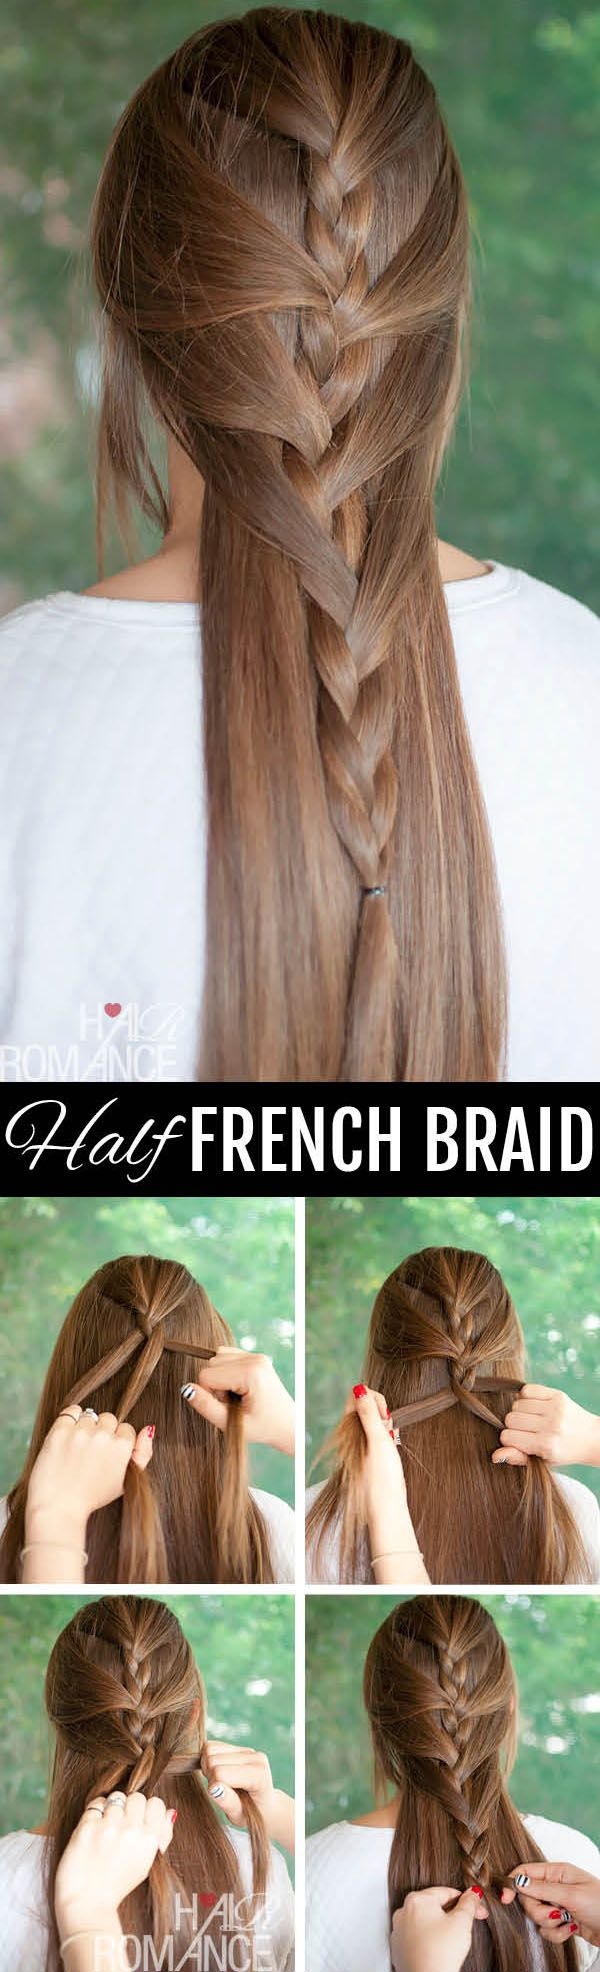 Fabulous Step By Step Hair Tutorials for whenever my hair is longer!